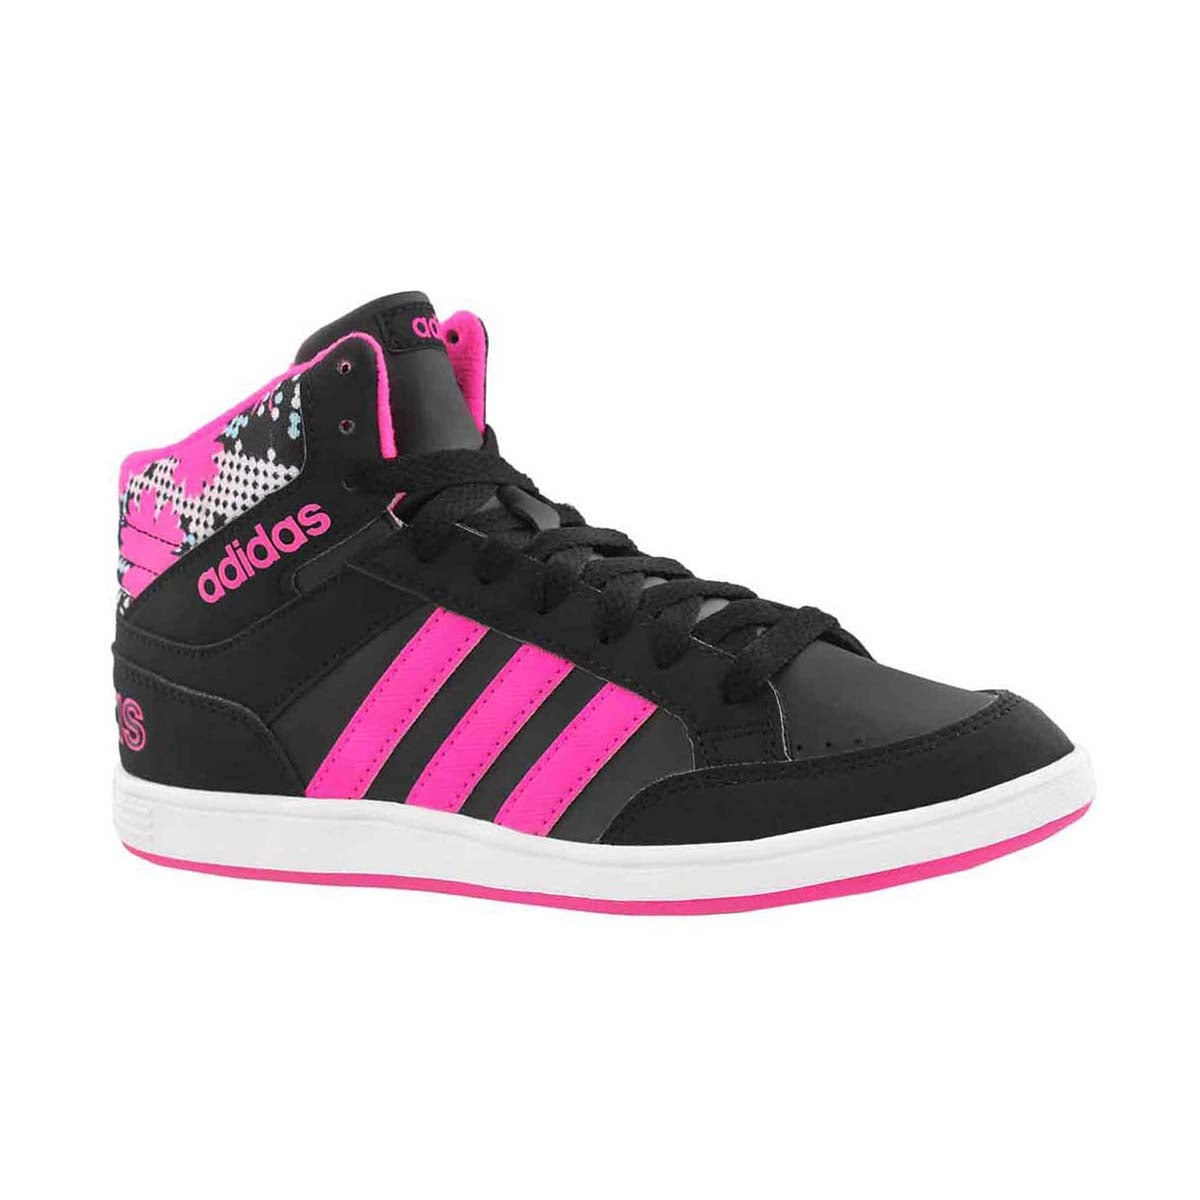 Grls Hoops Mid blk/pink lace up sneaker